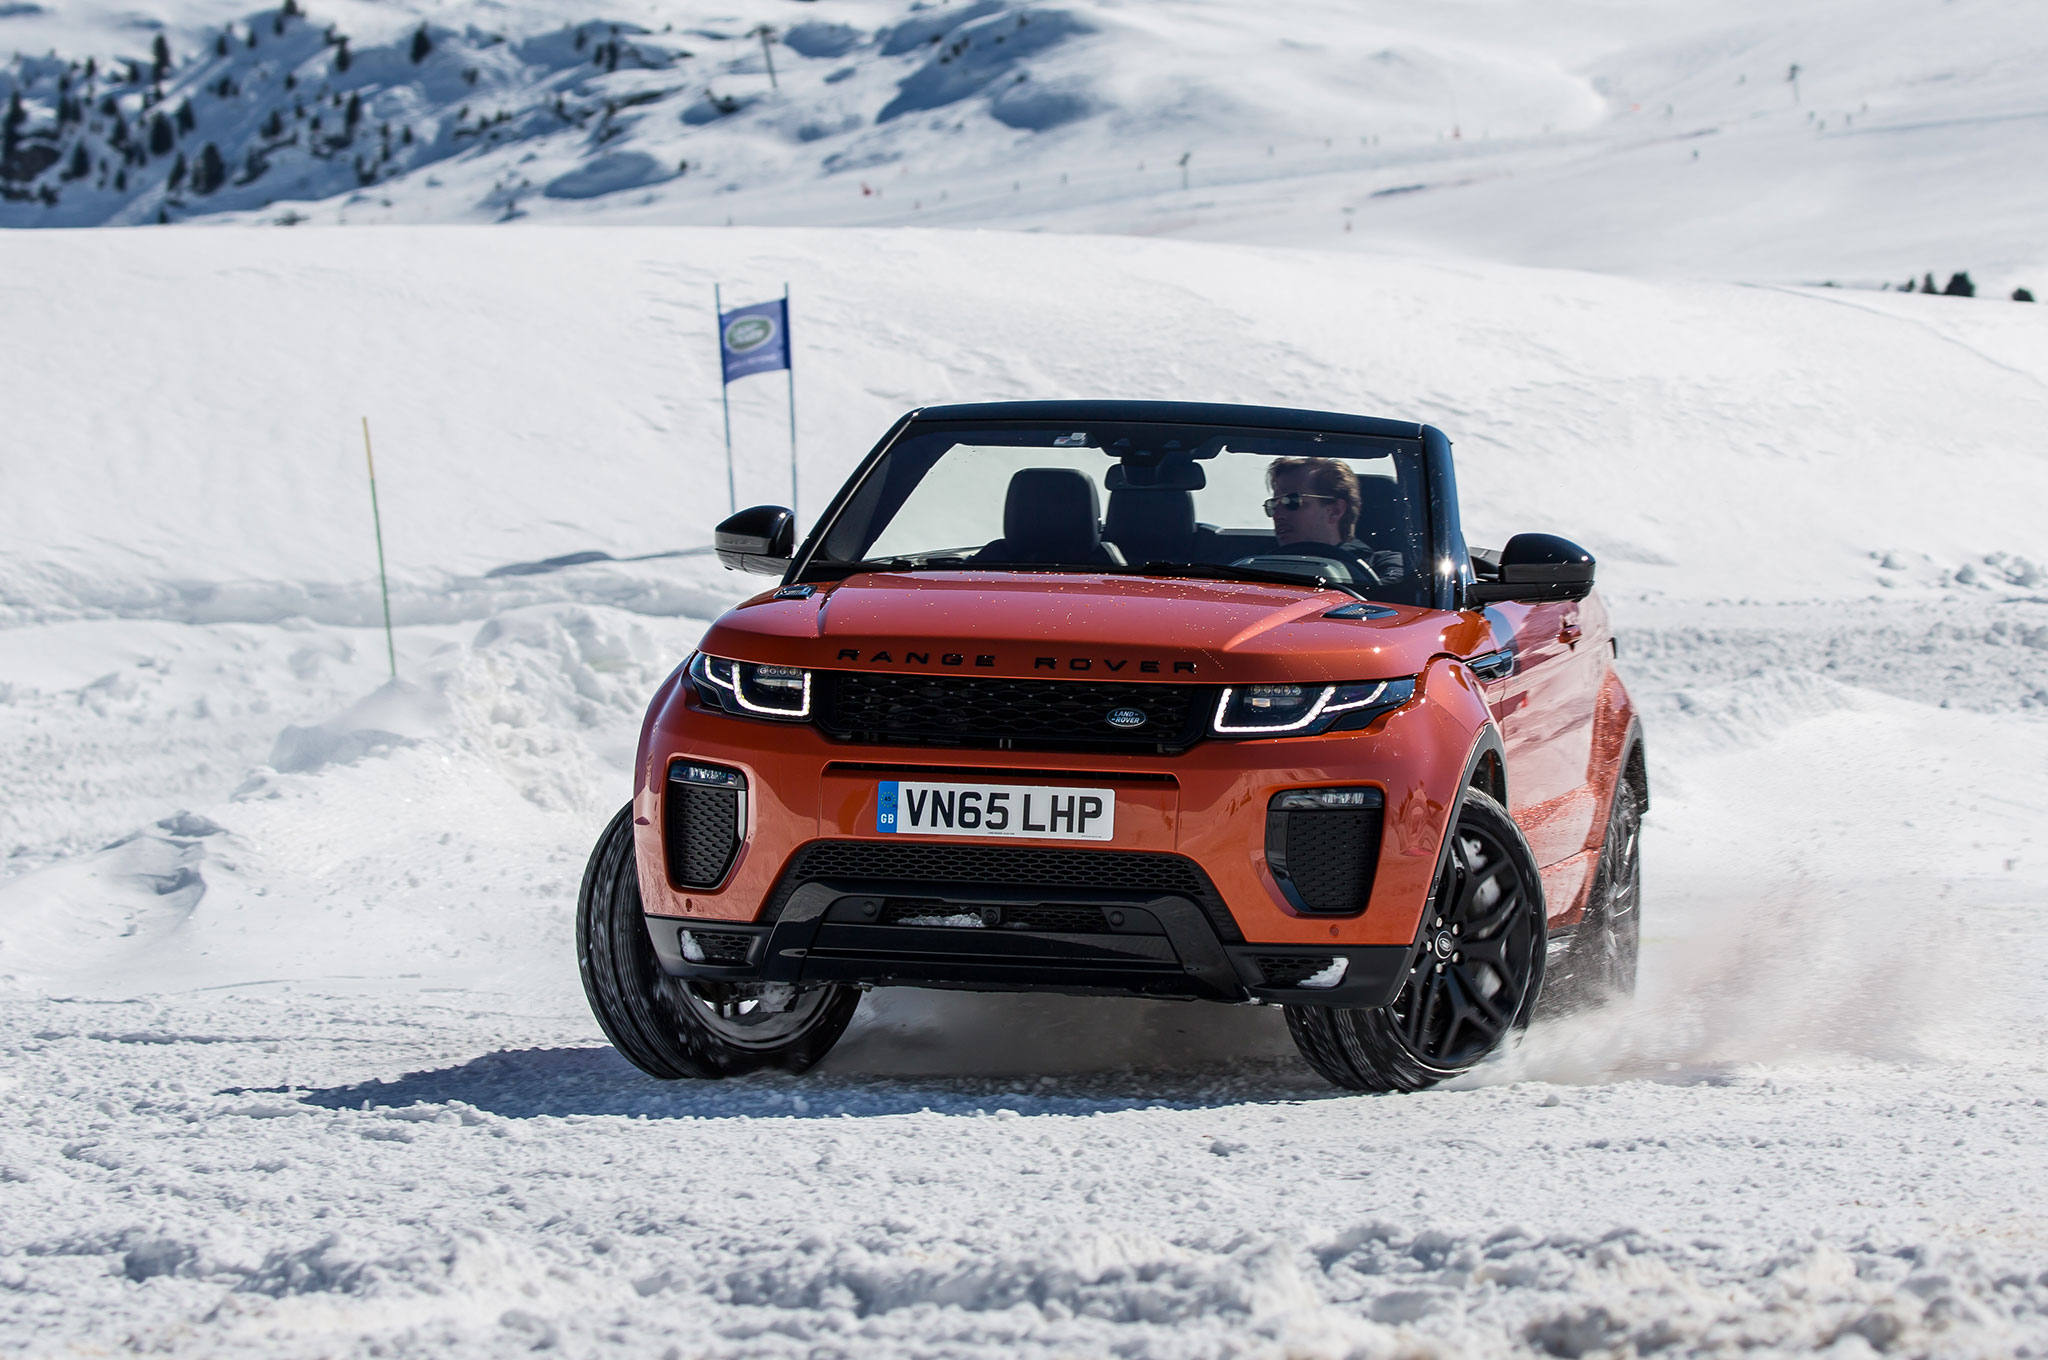 http://st.automobilemag.com/uploads/sites/11/2016/03/2017-Range-Rover-Evoque-Convertible-front-three-quarter-on-snow-03.jpg